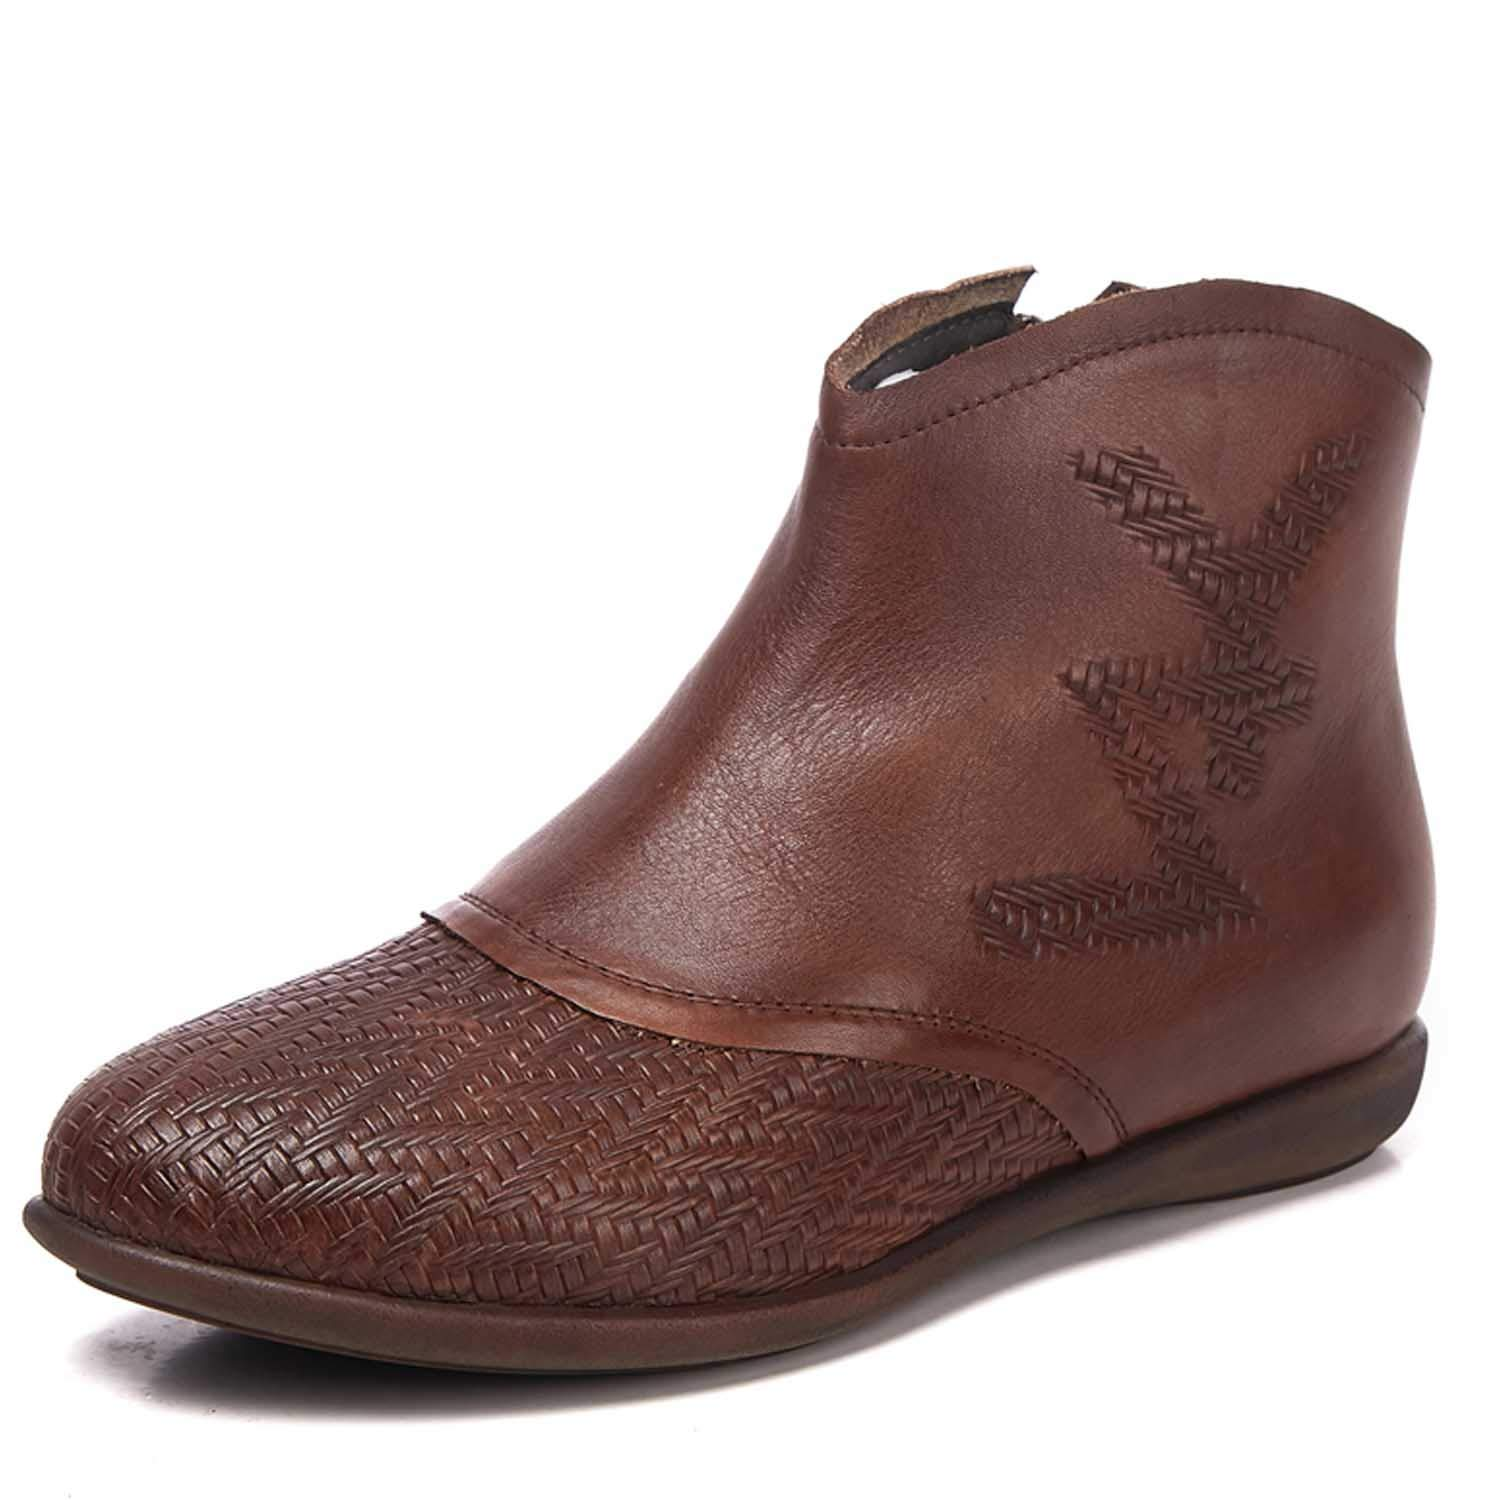 - Women's Leather Ankle Boots, Vintage Martin Boots Rubber Sole Brown Size 35-40